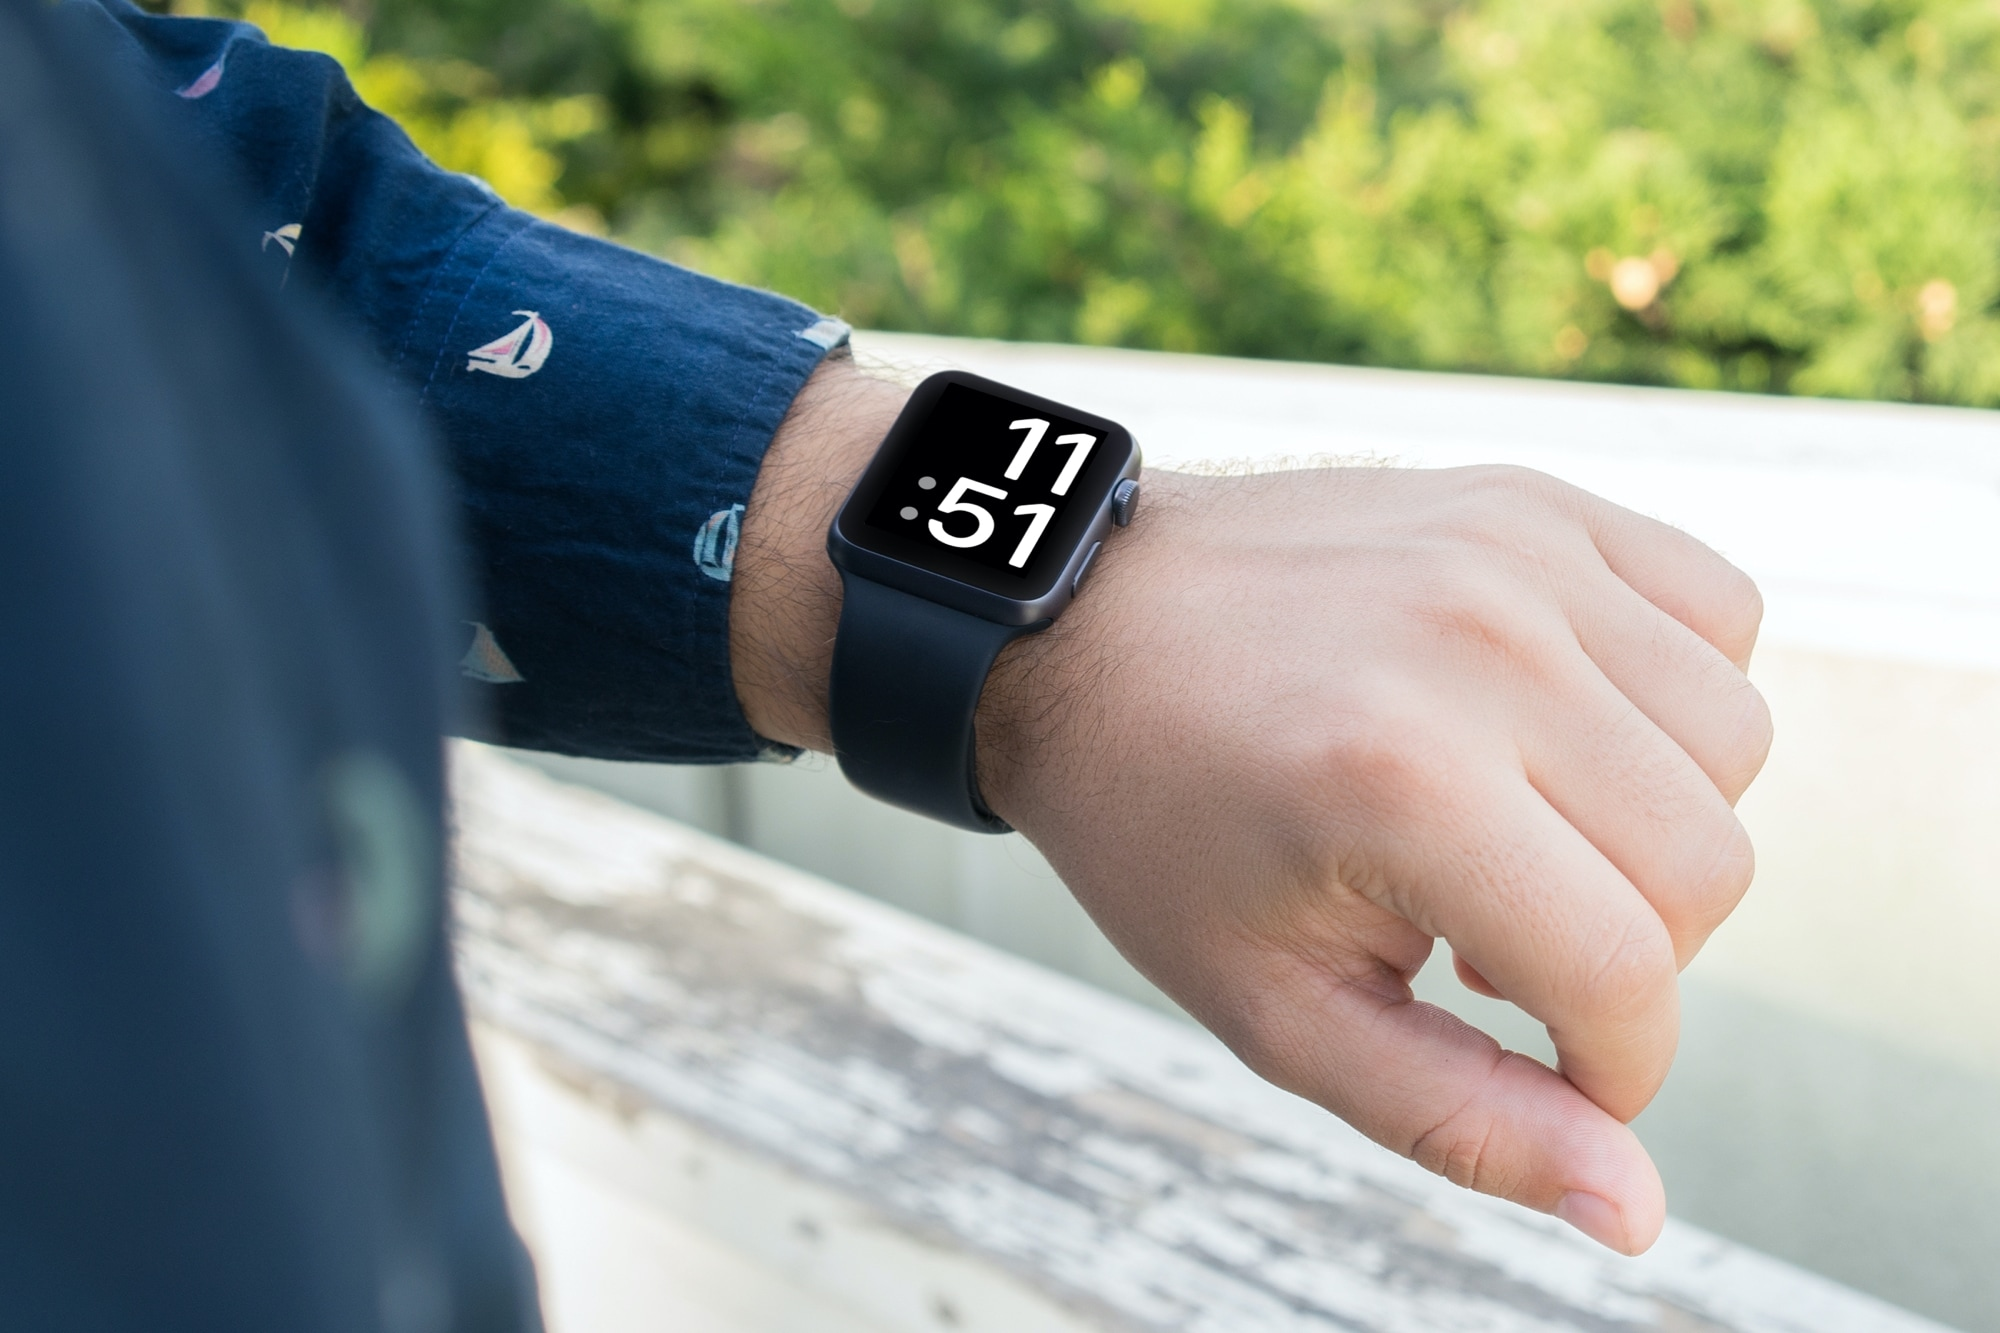 An Apple Watch Series 6 with the X-Large watch face shown on the display